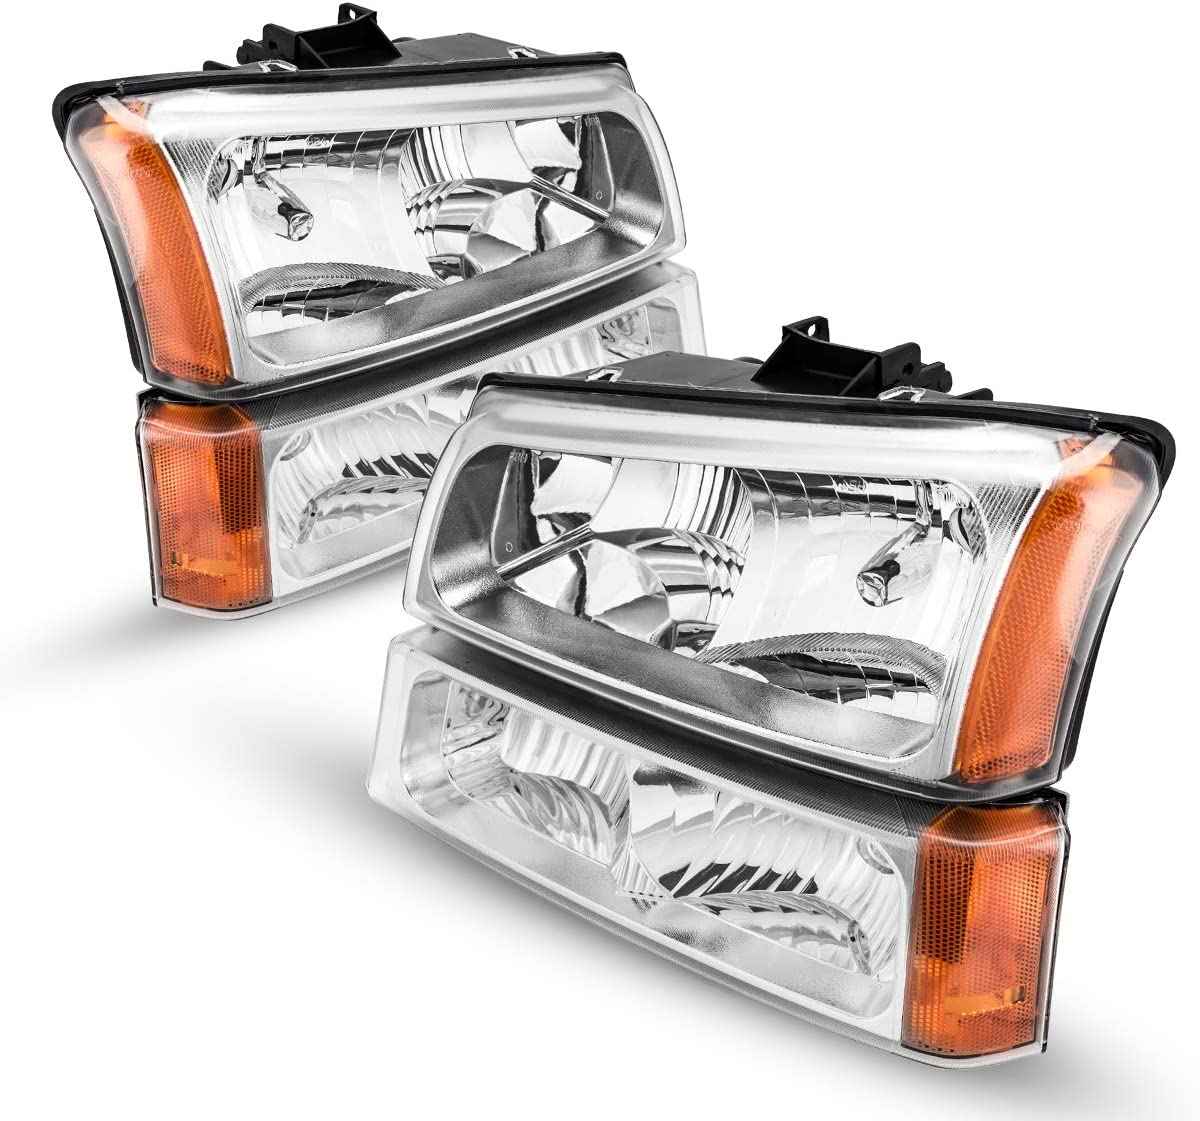 KAC Headlight Assembly Kit for 2006 Silverado Headlights Driver and Passenger Side Replacement Headlight Compatible with 2003-2006 Avalanche &Silverado 1500 2500 3500 Chrome Housing Amber